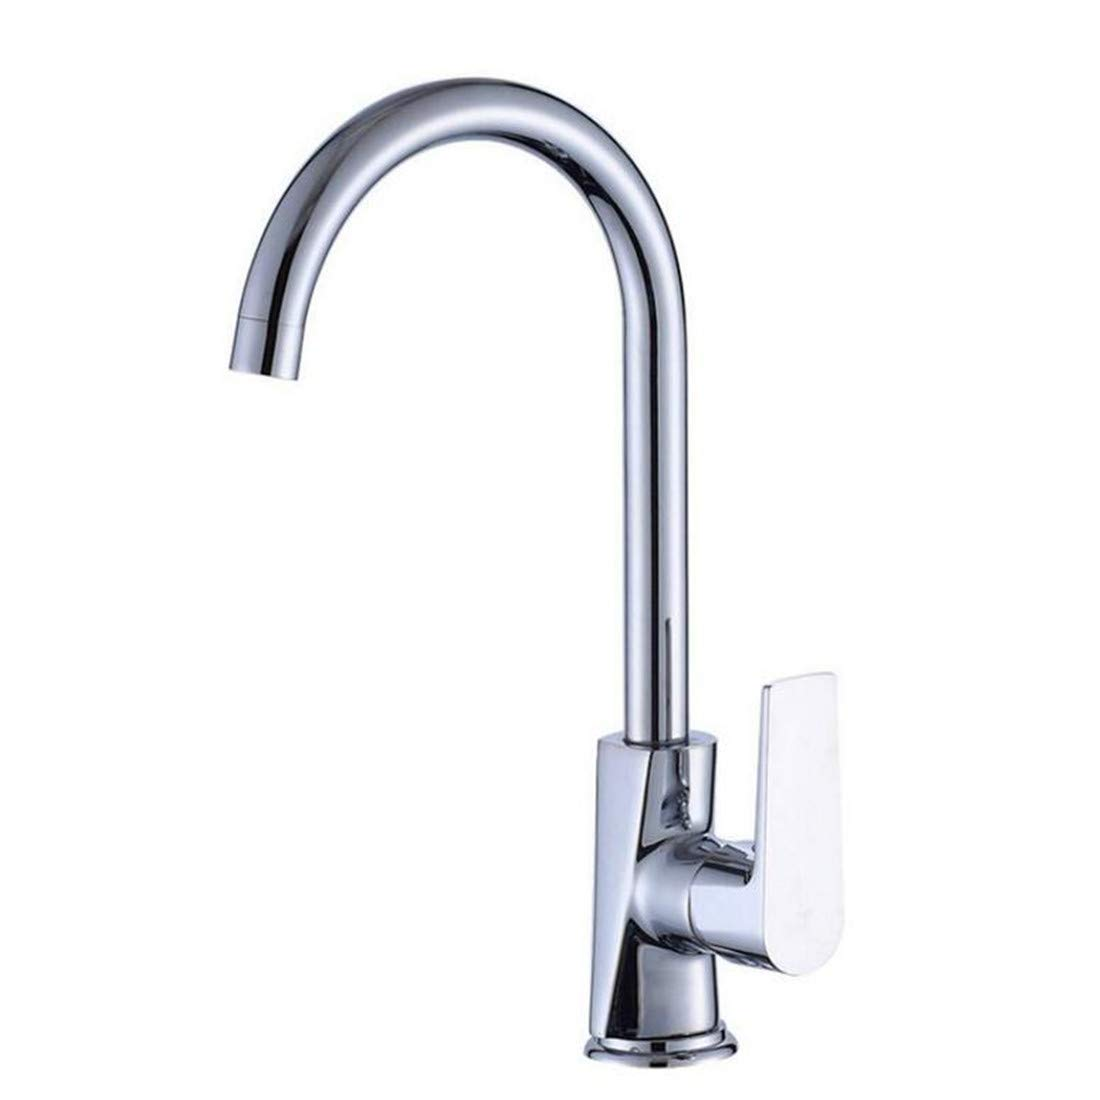 Modern Vintage Chrome-Plated Brass Kitchen Wash Basin Faucet 360 Degree redating Faucet with Hot and Cold Water Mixing